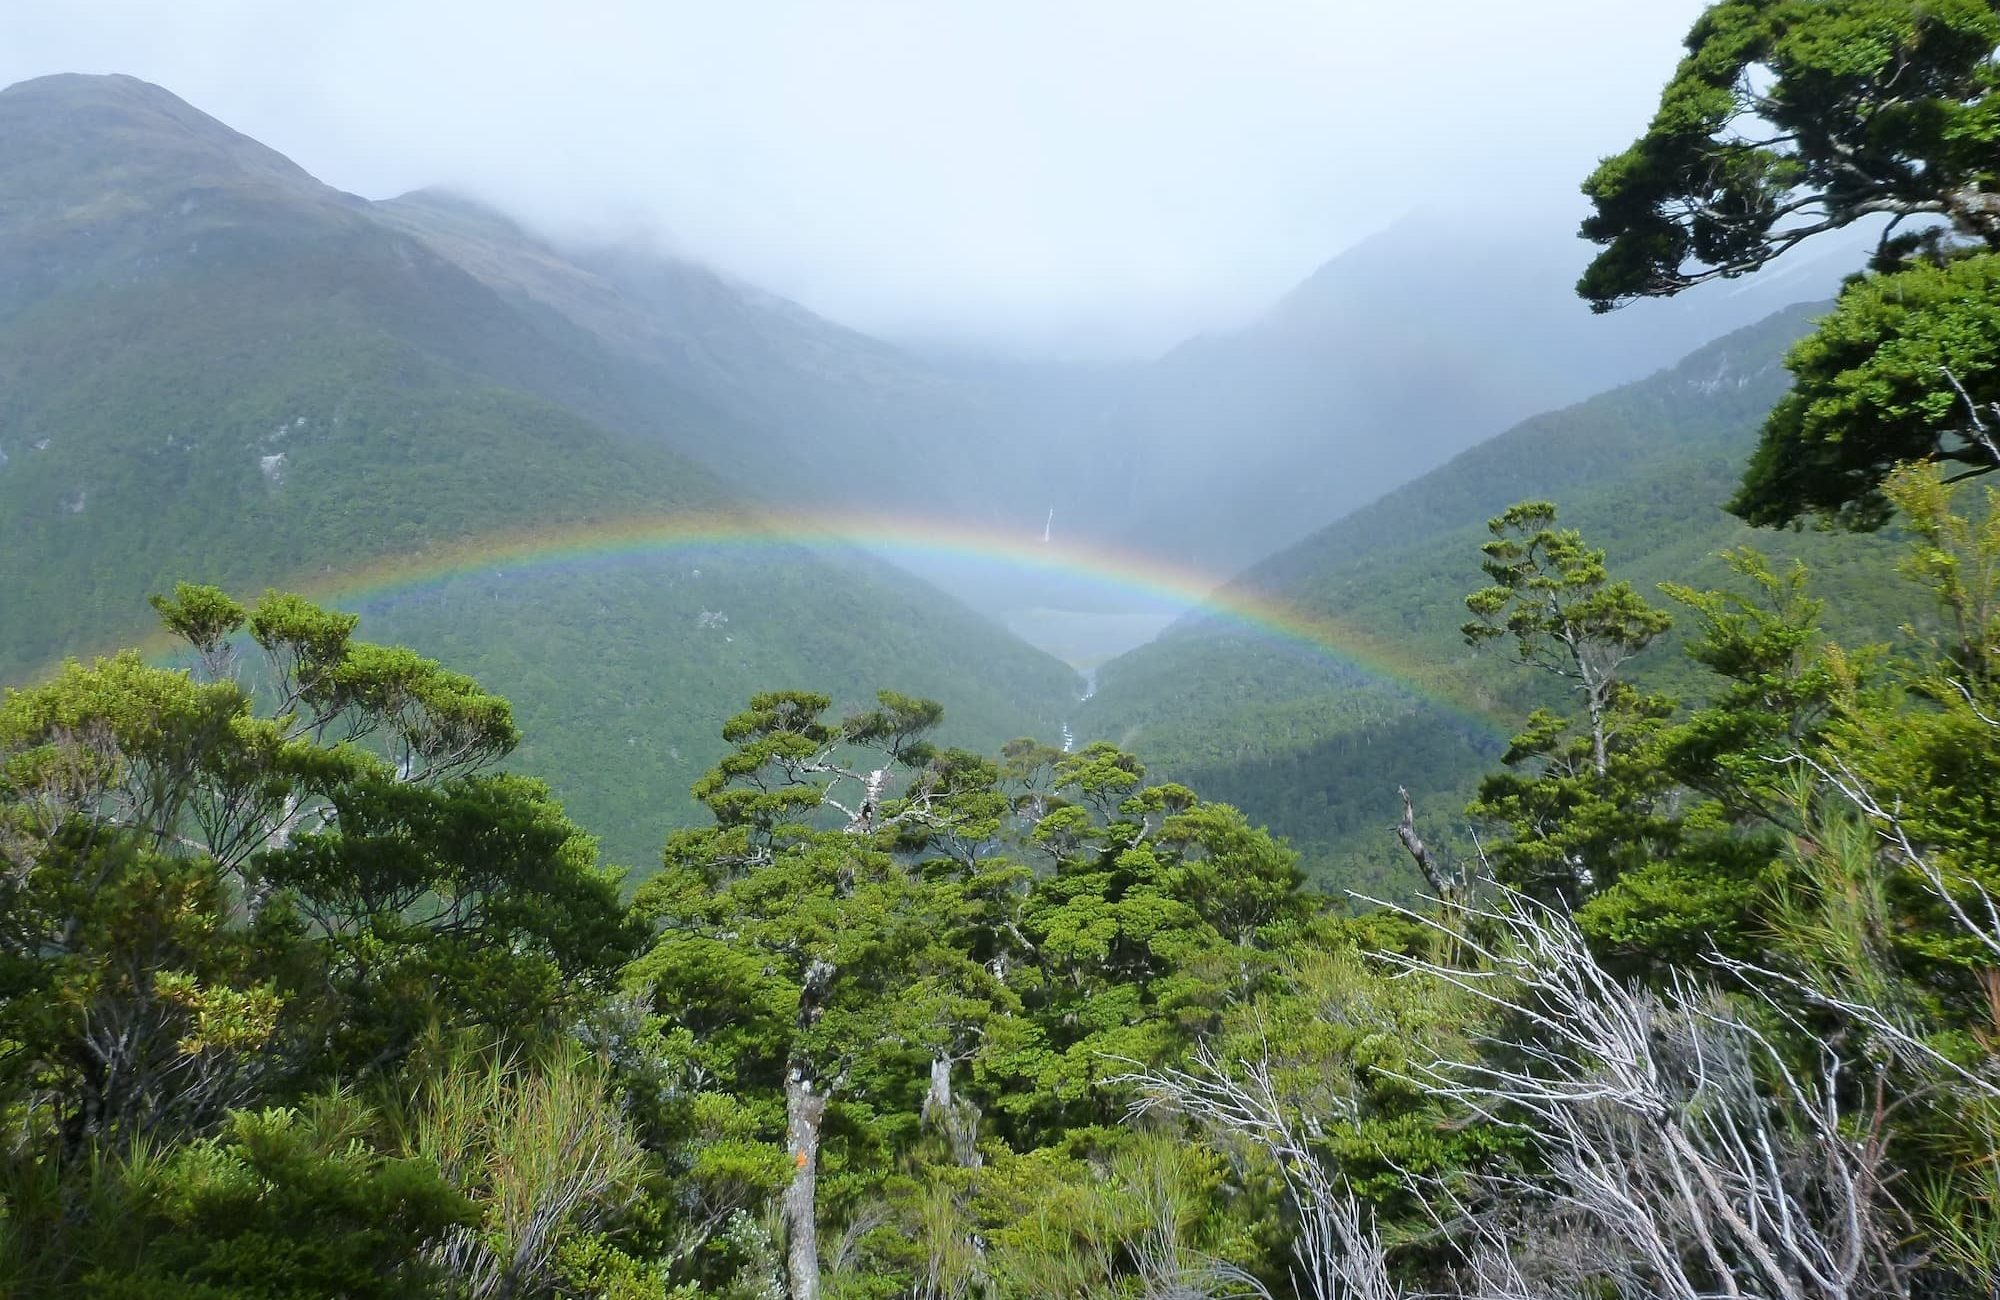 Rainbow over the East Matukituki